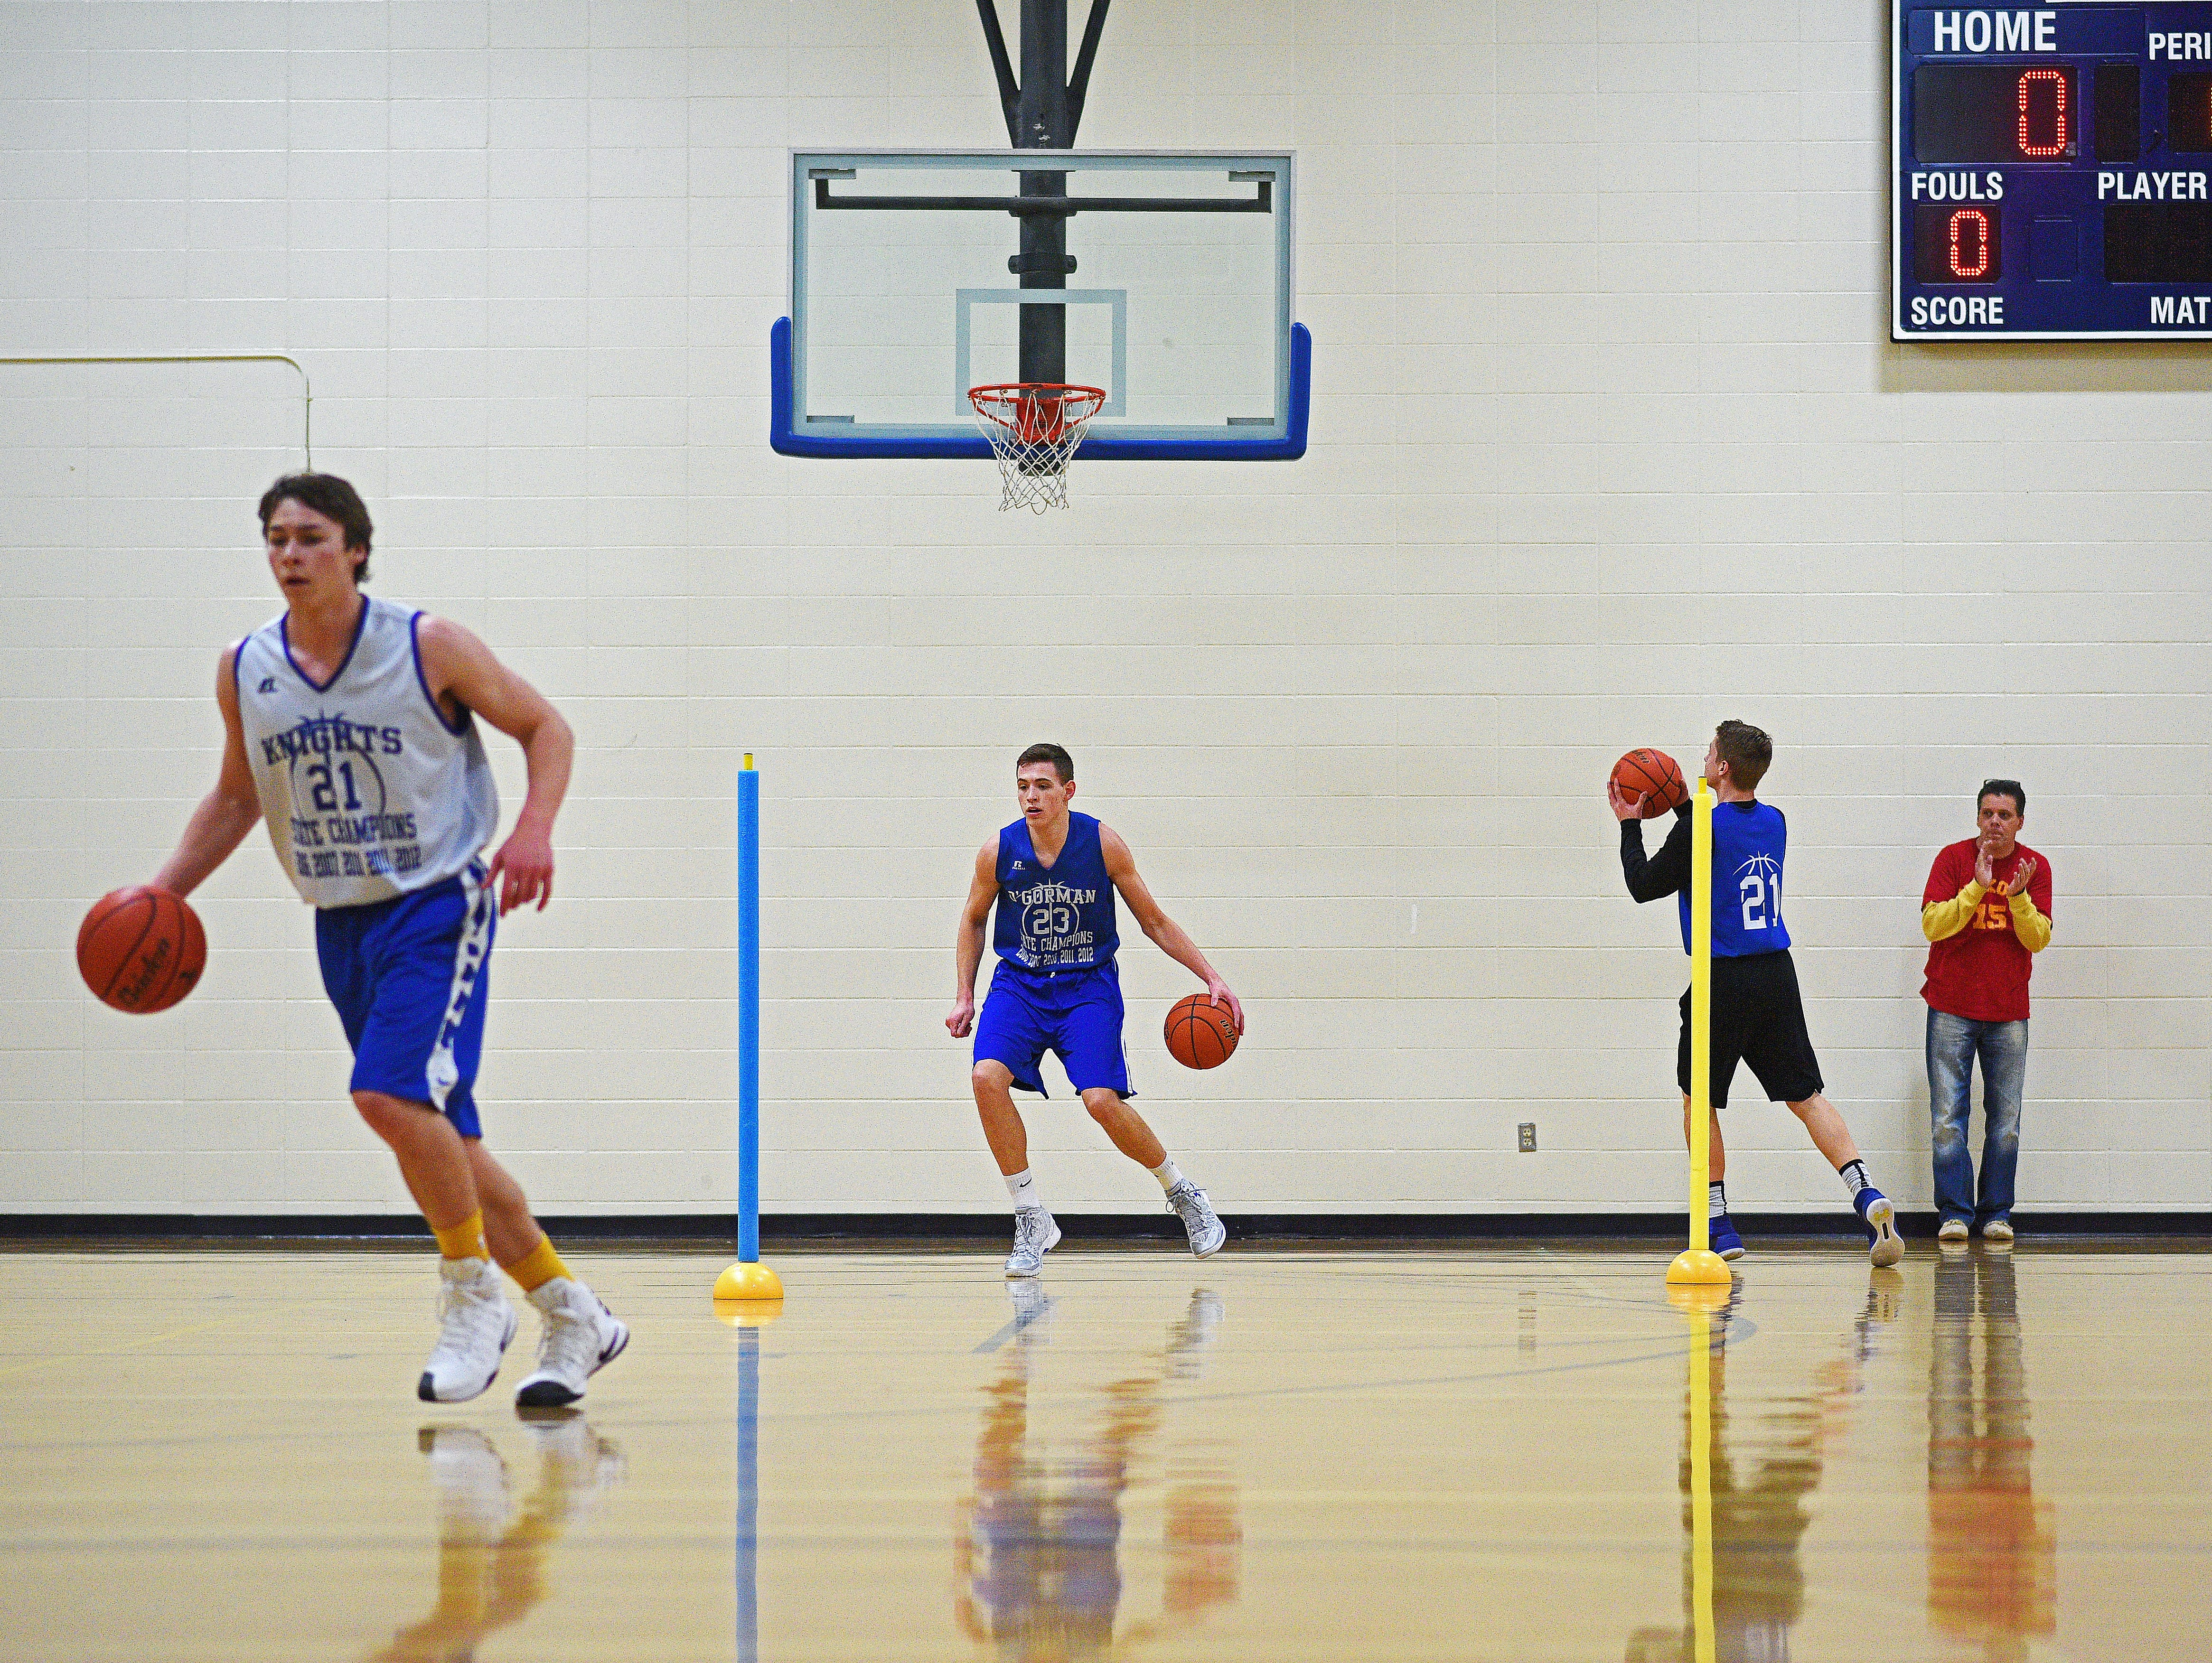 O'Gorman's Matt Cartwright, second from left, takes part in a drill during practice Tuesday, Feb. 14, 2017, at O'Gorman High School in Sioux Falls.